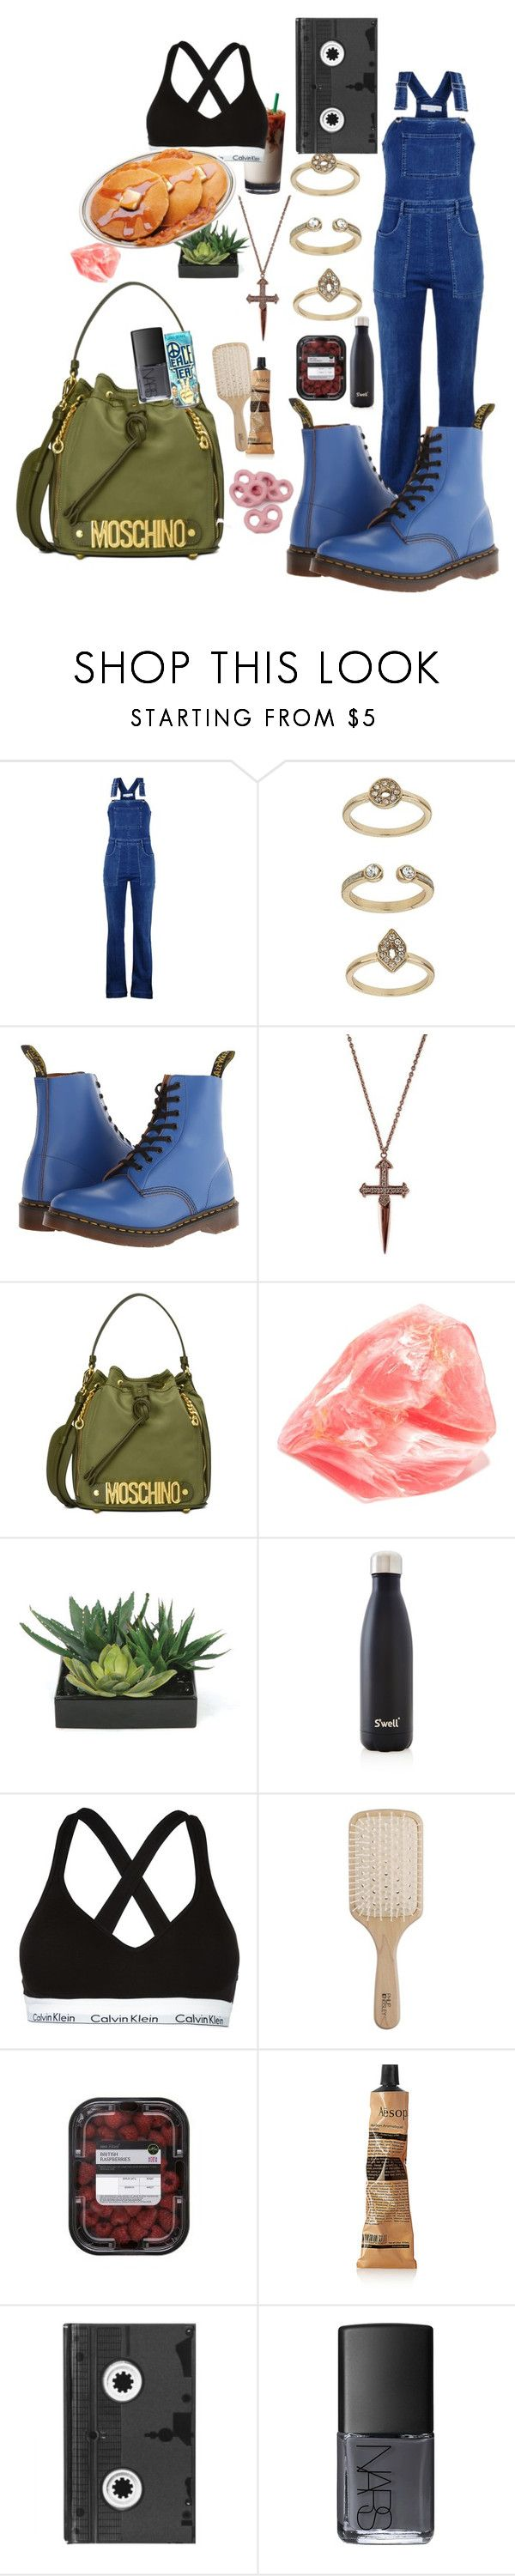 """""""unit 4"""" by inspiredbyart345 ❤ liked on Polyvore featuring STELLA McCARTNEY, Topshop, Dr. Martens, Moschino, Lux-Art Silks, S'well, Calvin Klein Jeans, Philip Kingsley, Aesop and Luckies"""